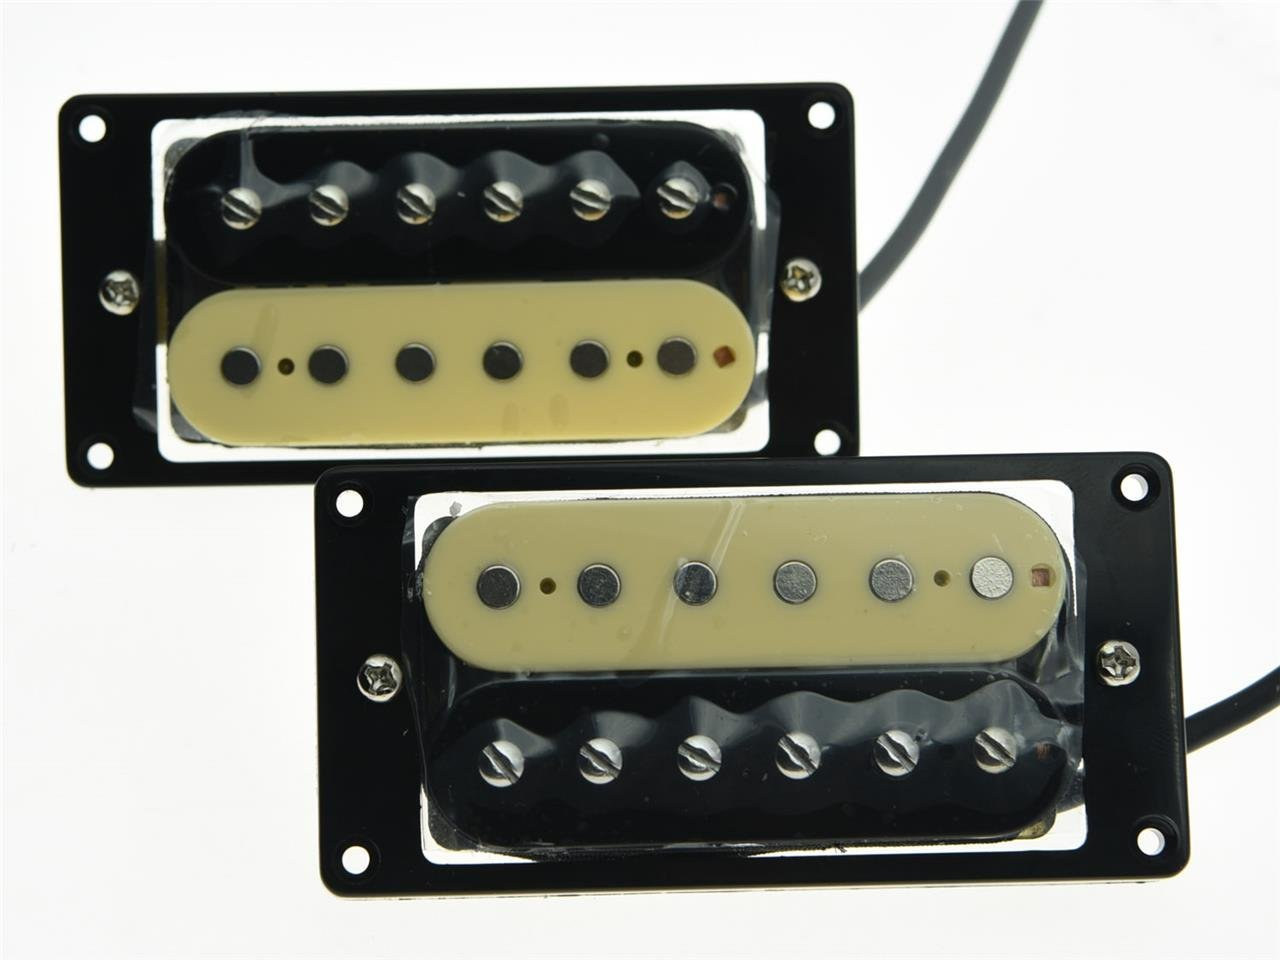 High quality 2x Zebra Alnico V 50's Vintage Sound Humbucker Neck/Bridge Pickup Guitar Pickups high quality new rc2 6242 000 rc2 6242 arm swing gear assembly for hp p2050 p2035 p2035n p2055d p2055dn p2055n fuser drive gear